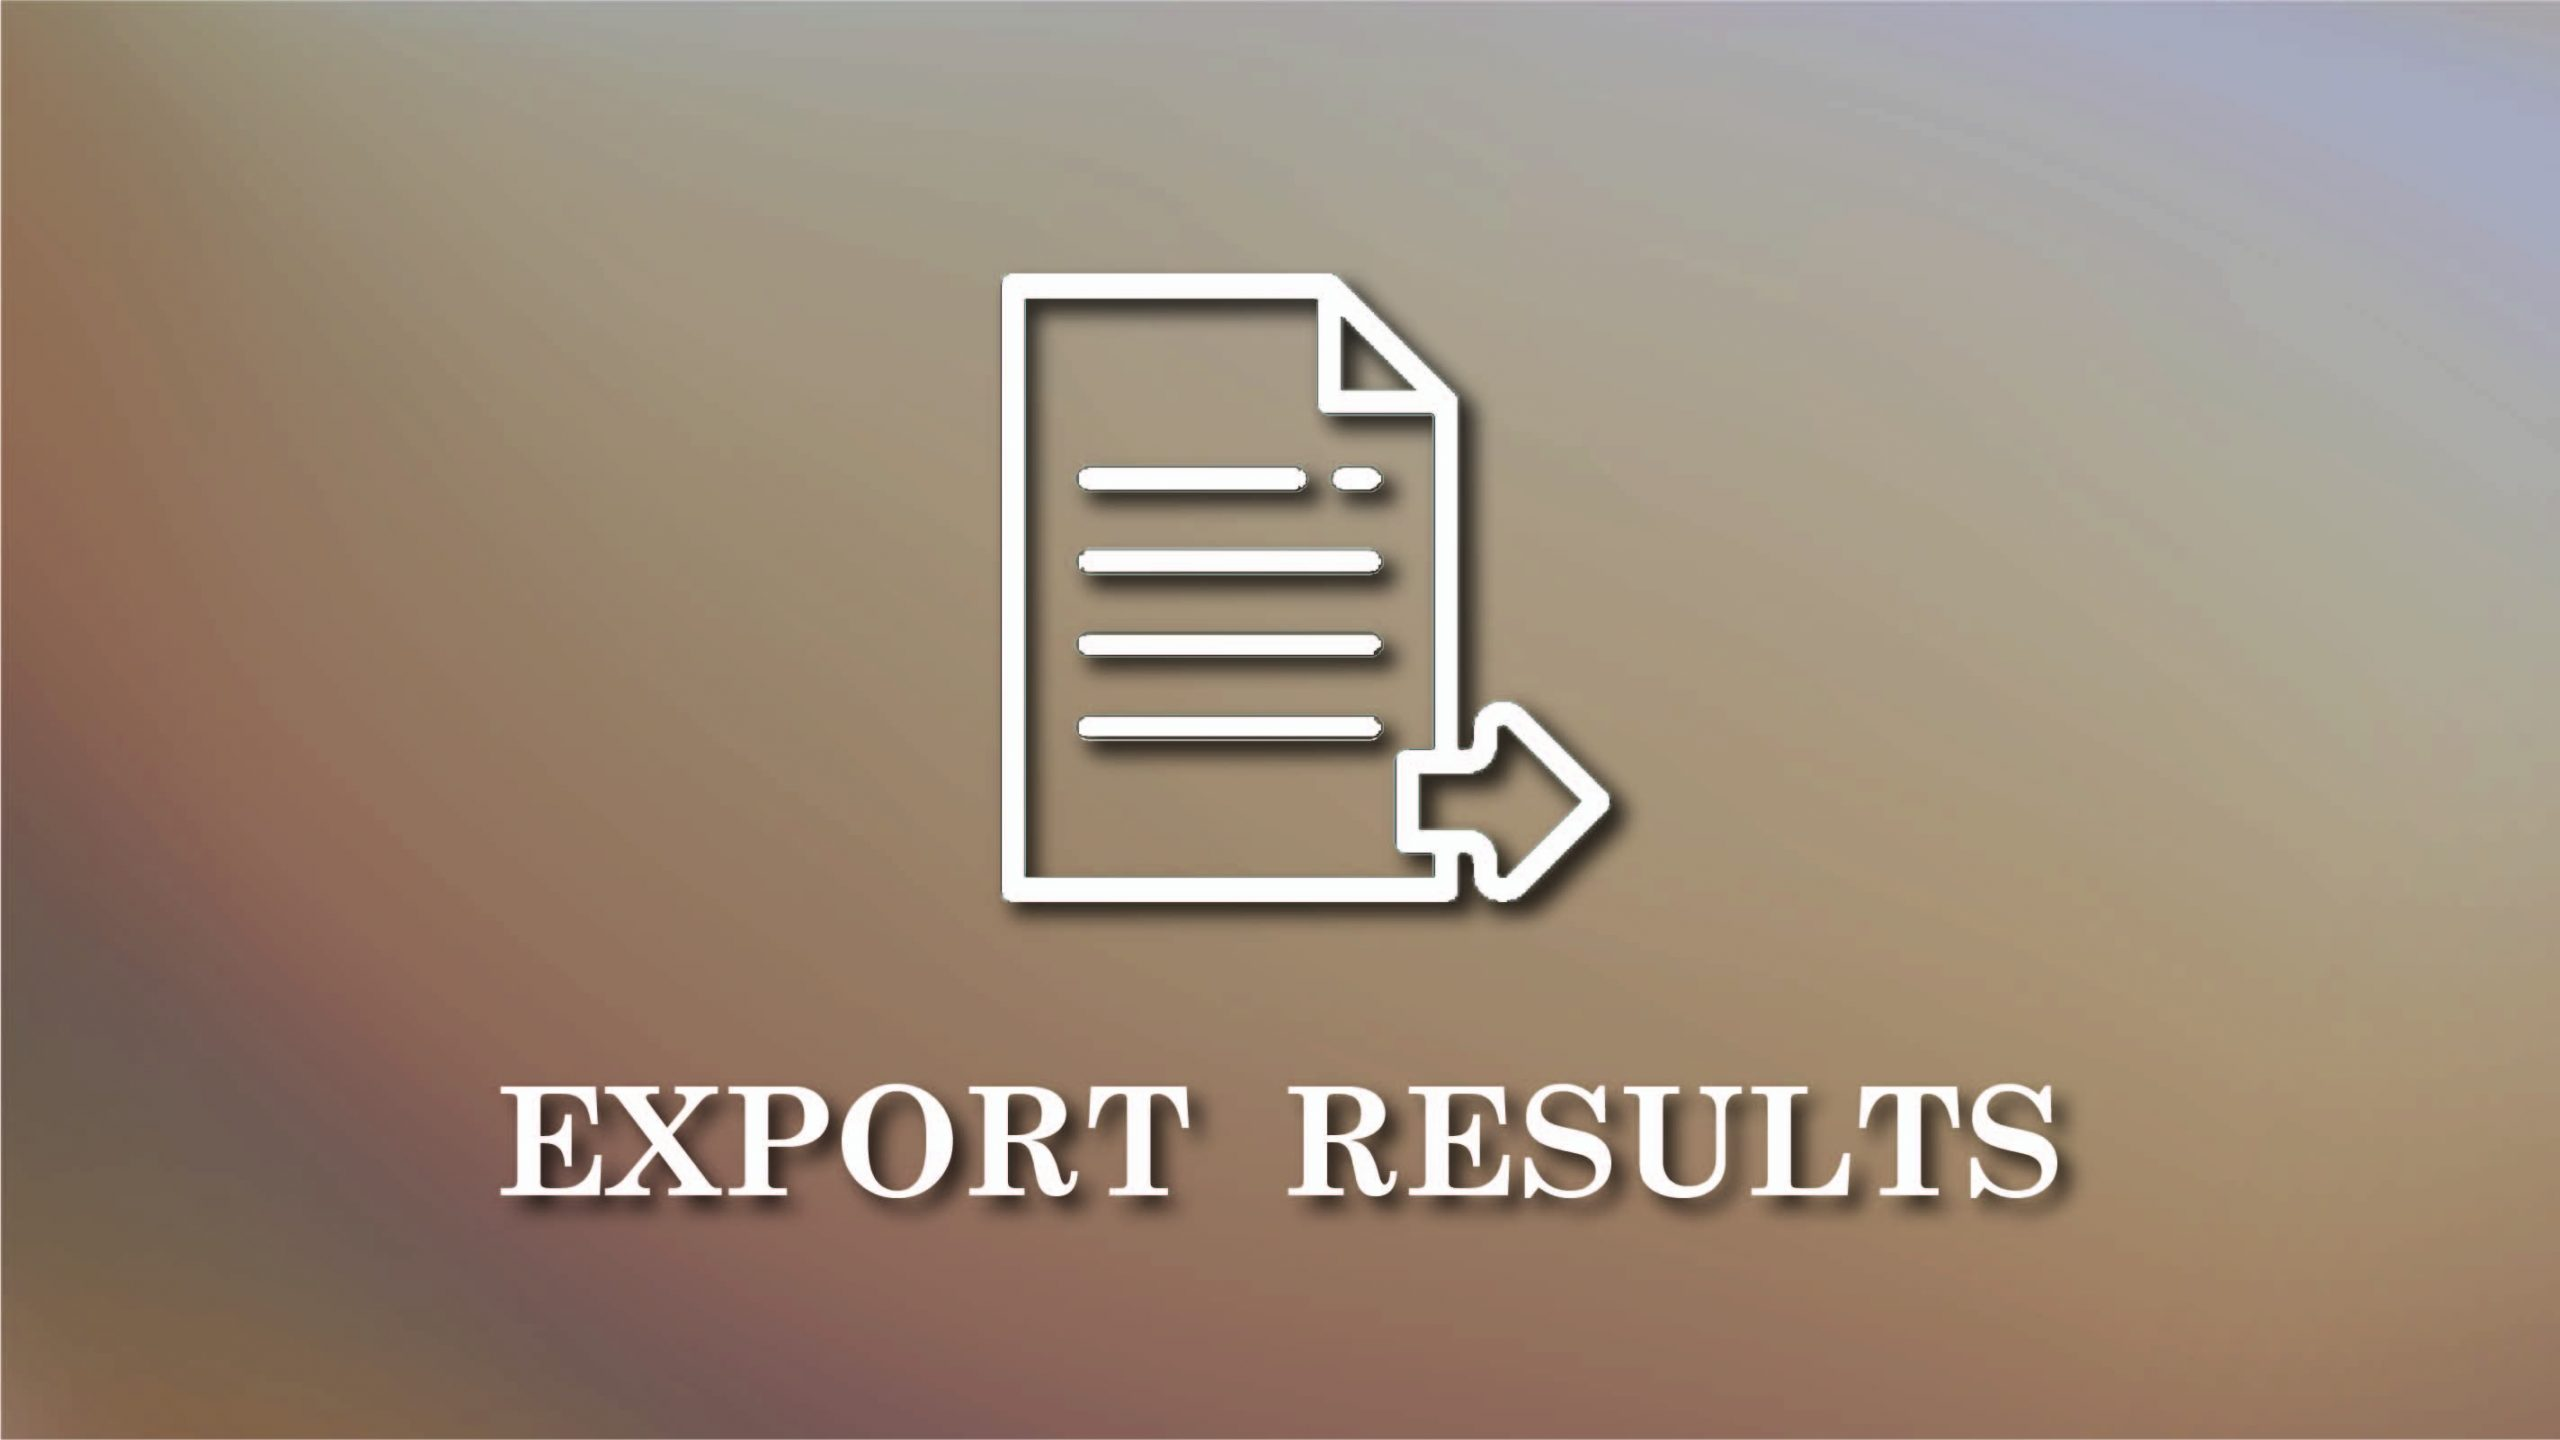 Export results